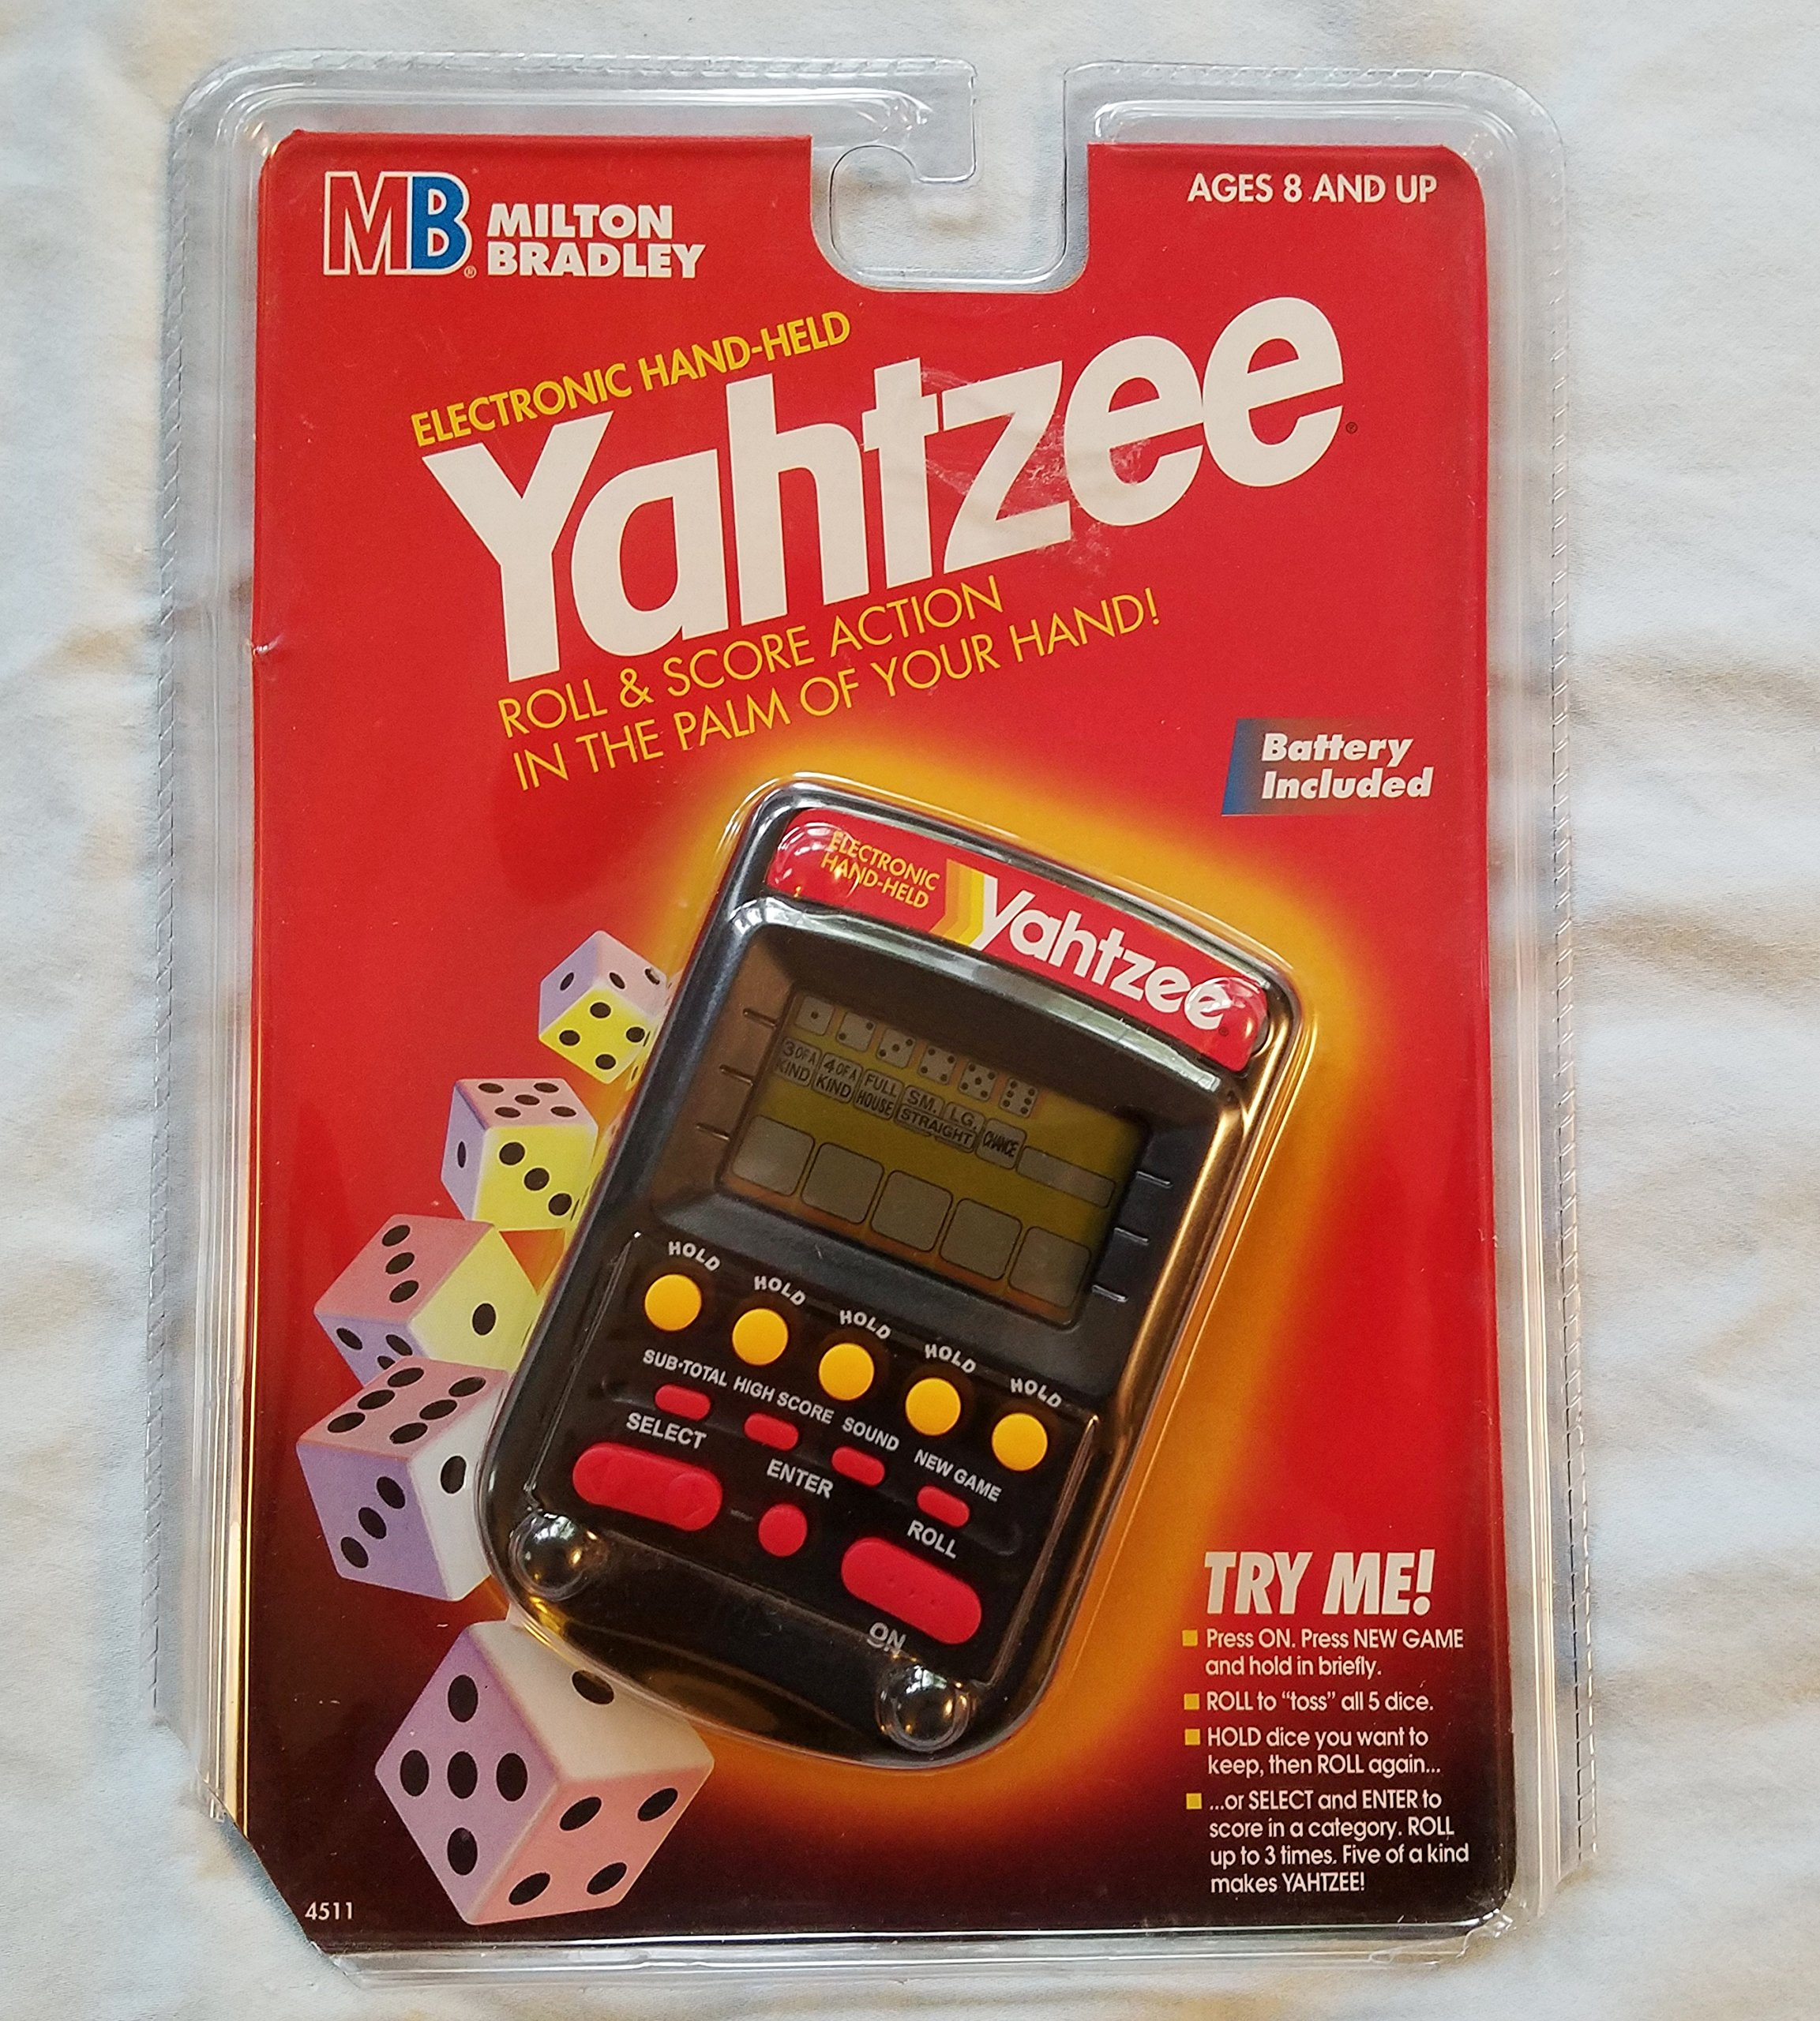 Electronic Handheld Yahtzee - Clear black